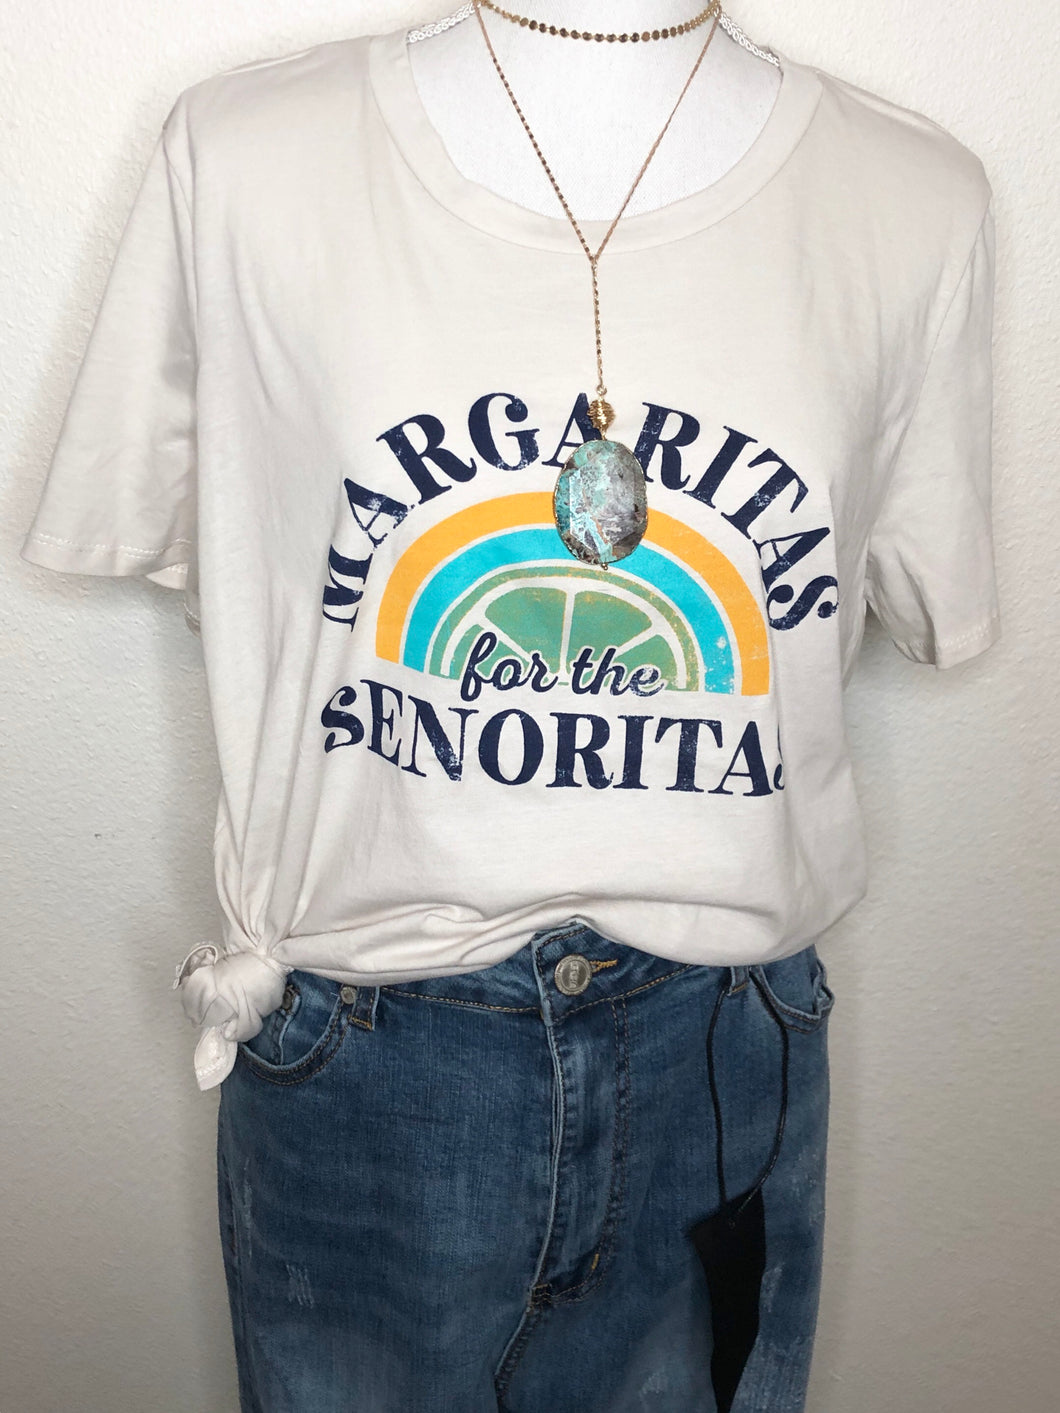 Margaritas for the senoritas plus tee